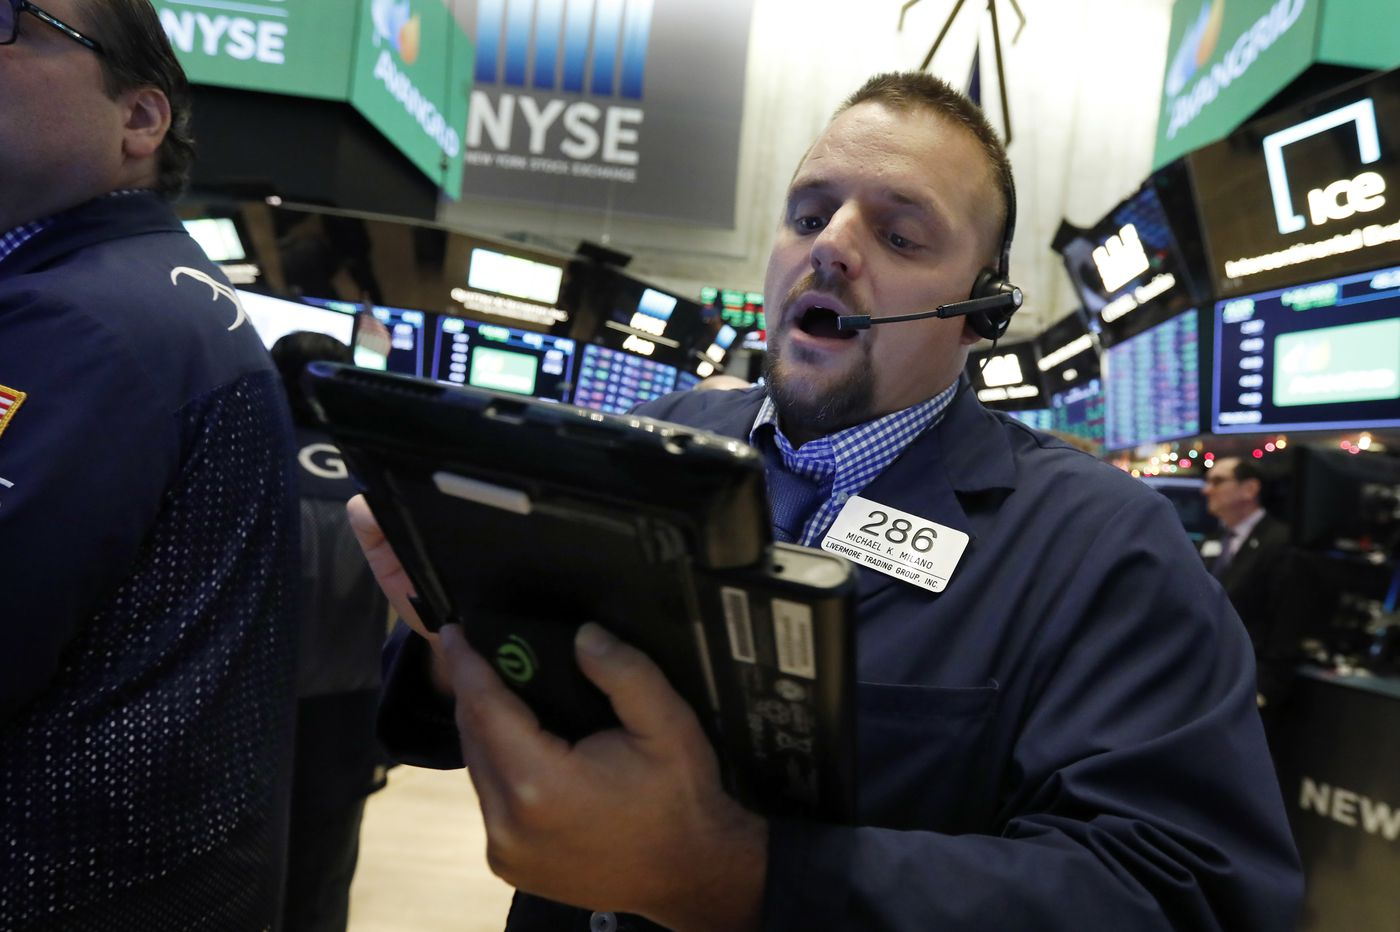 Renewed jitters over trade send Dow down nearly 800